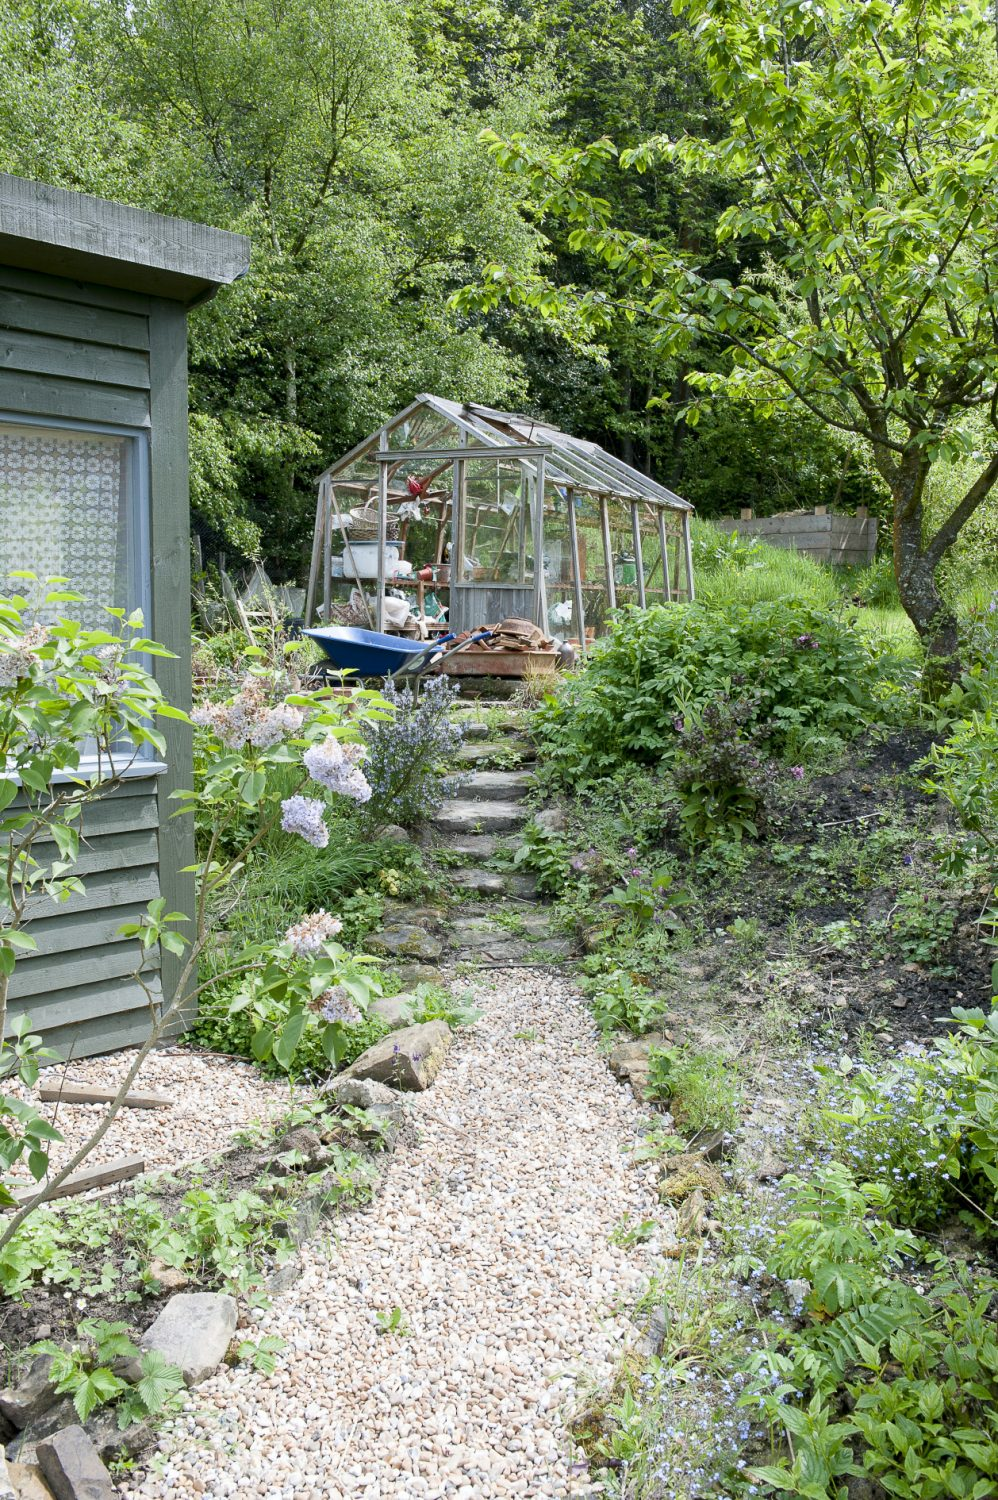 Stone steps lead up to the greenhouse